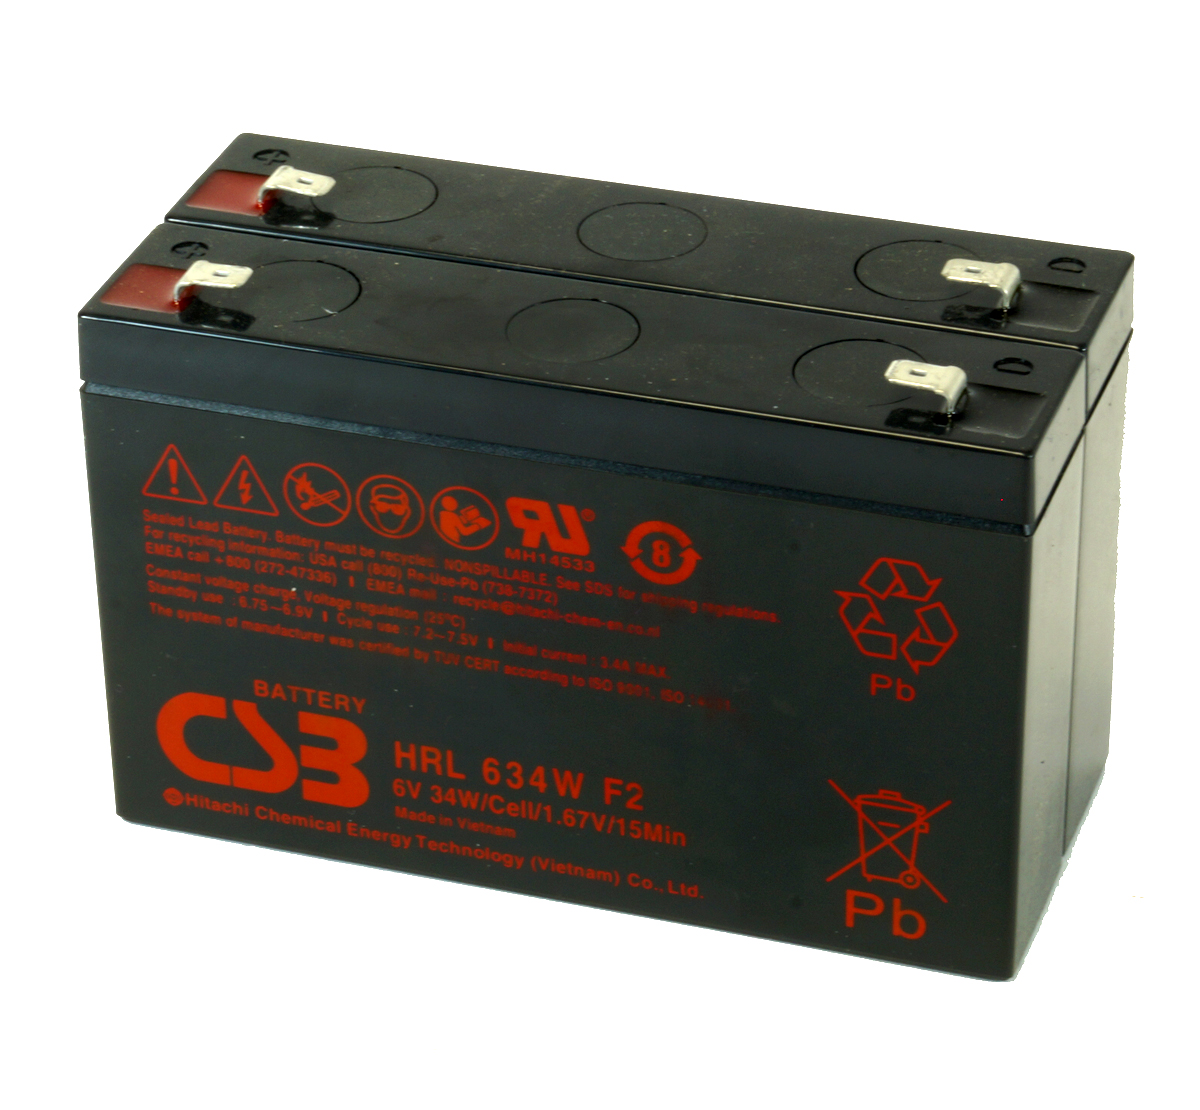 MDS2317 UPS Battery Kit for MGE AB2317